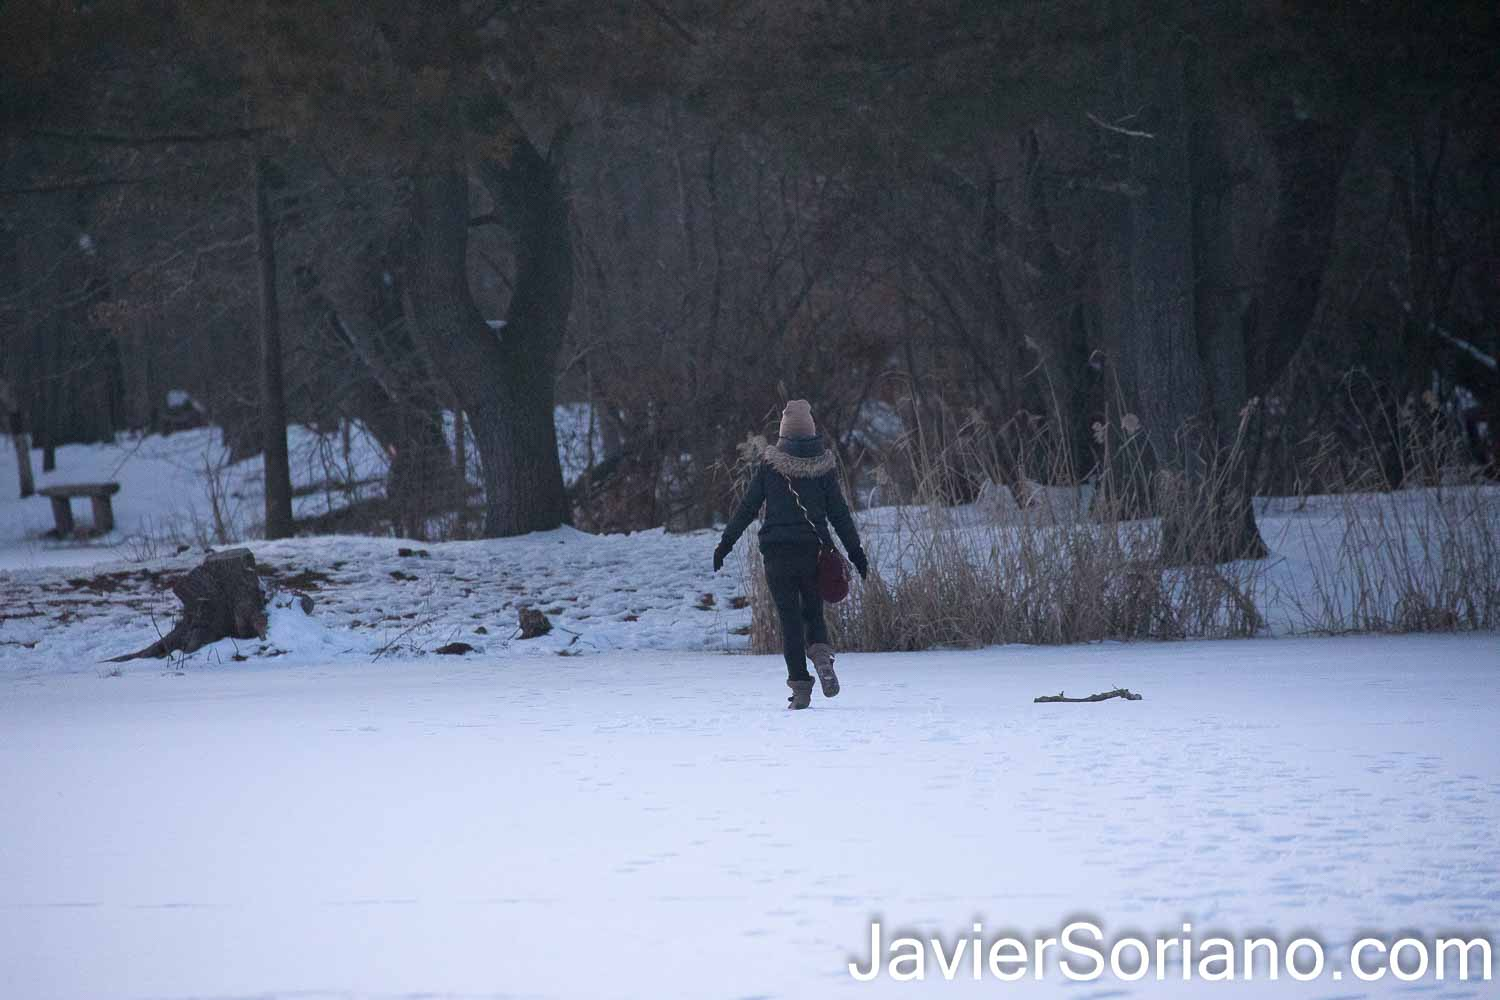 Sunday, February 21, 2021. Brooklyn, New York City – Woman walking on a frozen lake in Prospect Park. Photo by Javier Soriano/www.JavierSoriano.com